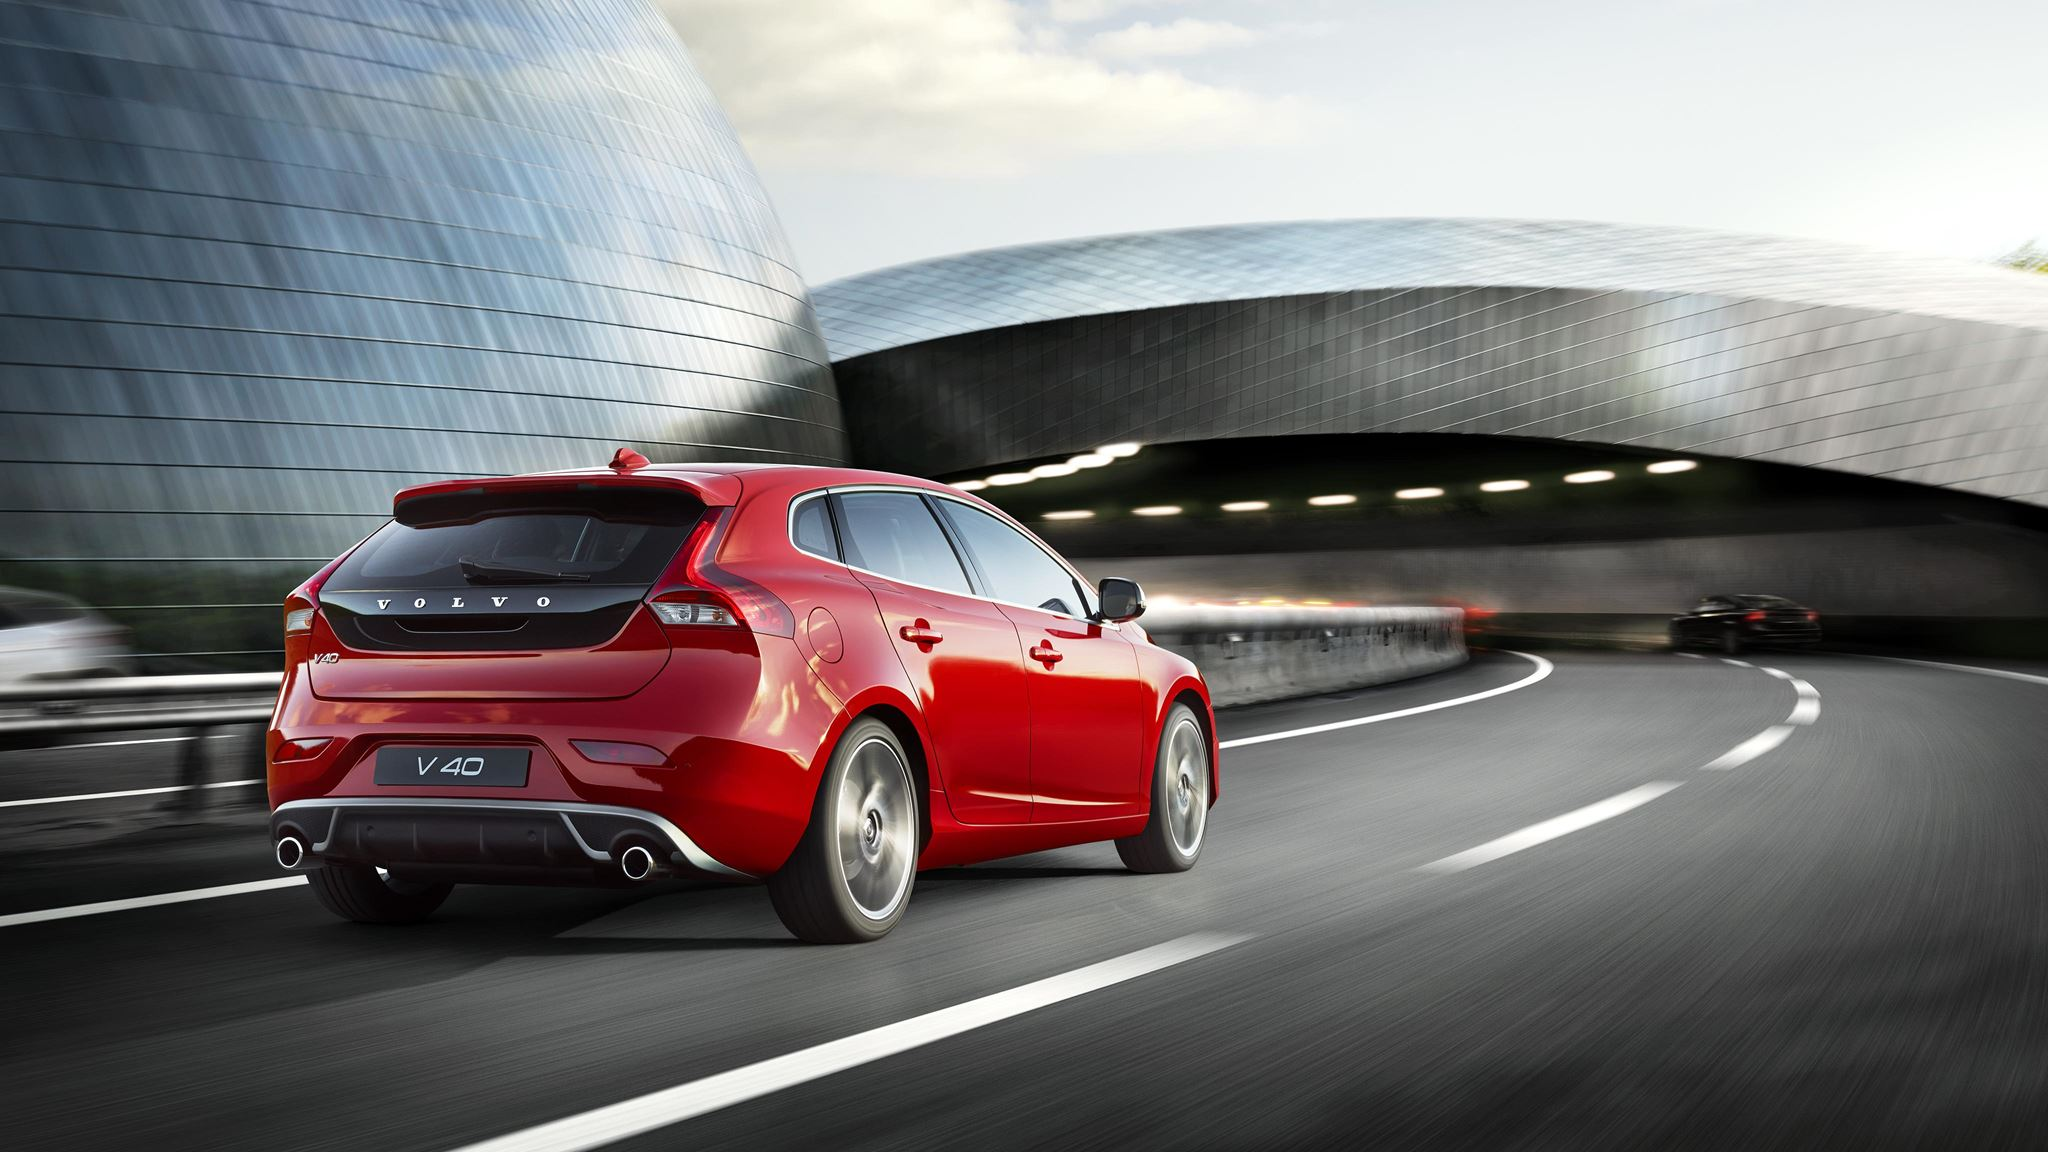 Volvo V40 hatch launched India rear